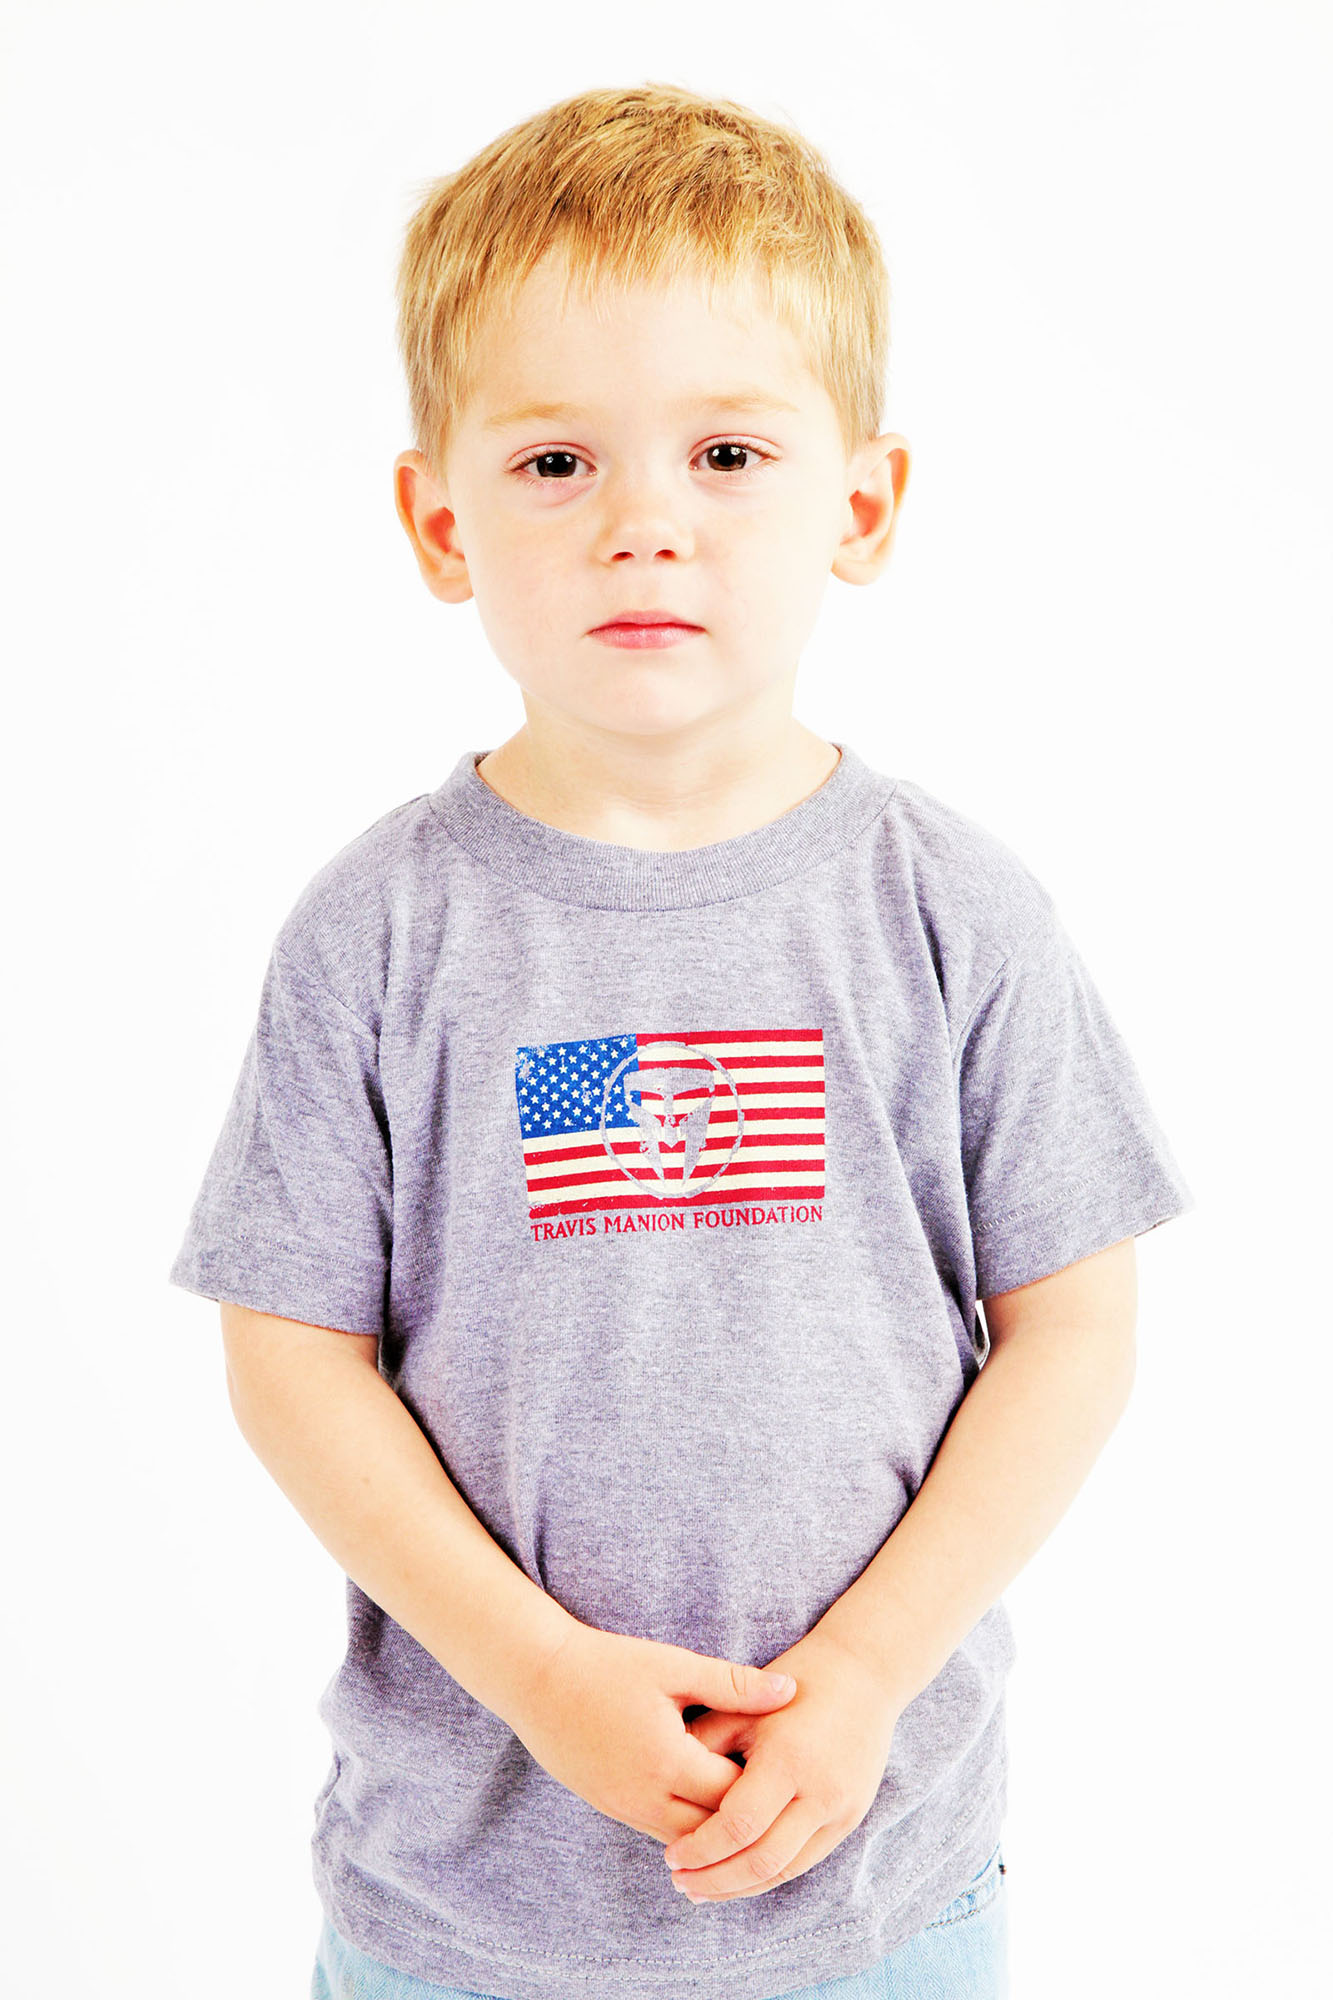 Travis Manion Foundation Unisex Kids TMF Flag Tee